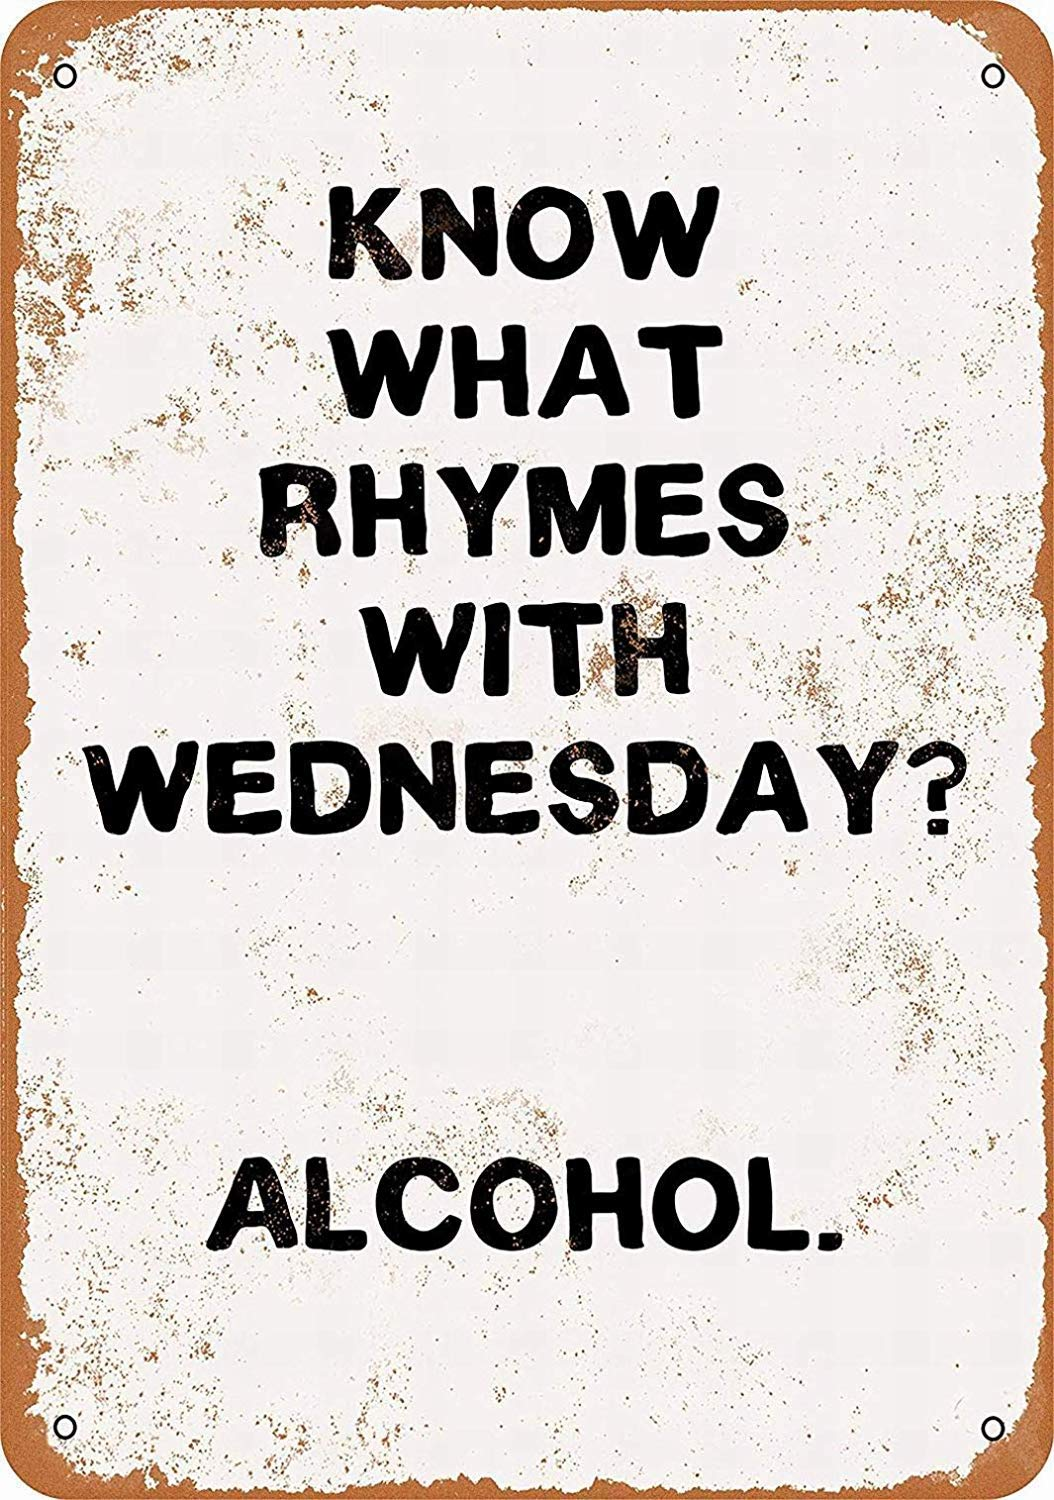 JIA KOAH Alcohol Rhymes Wednesday Signo de Lata Decoracion ...